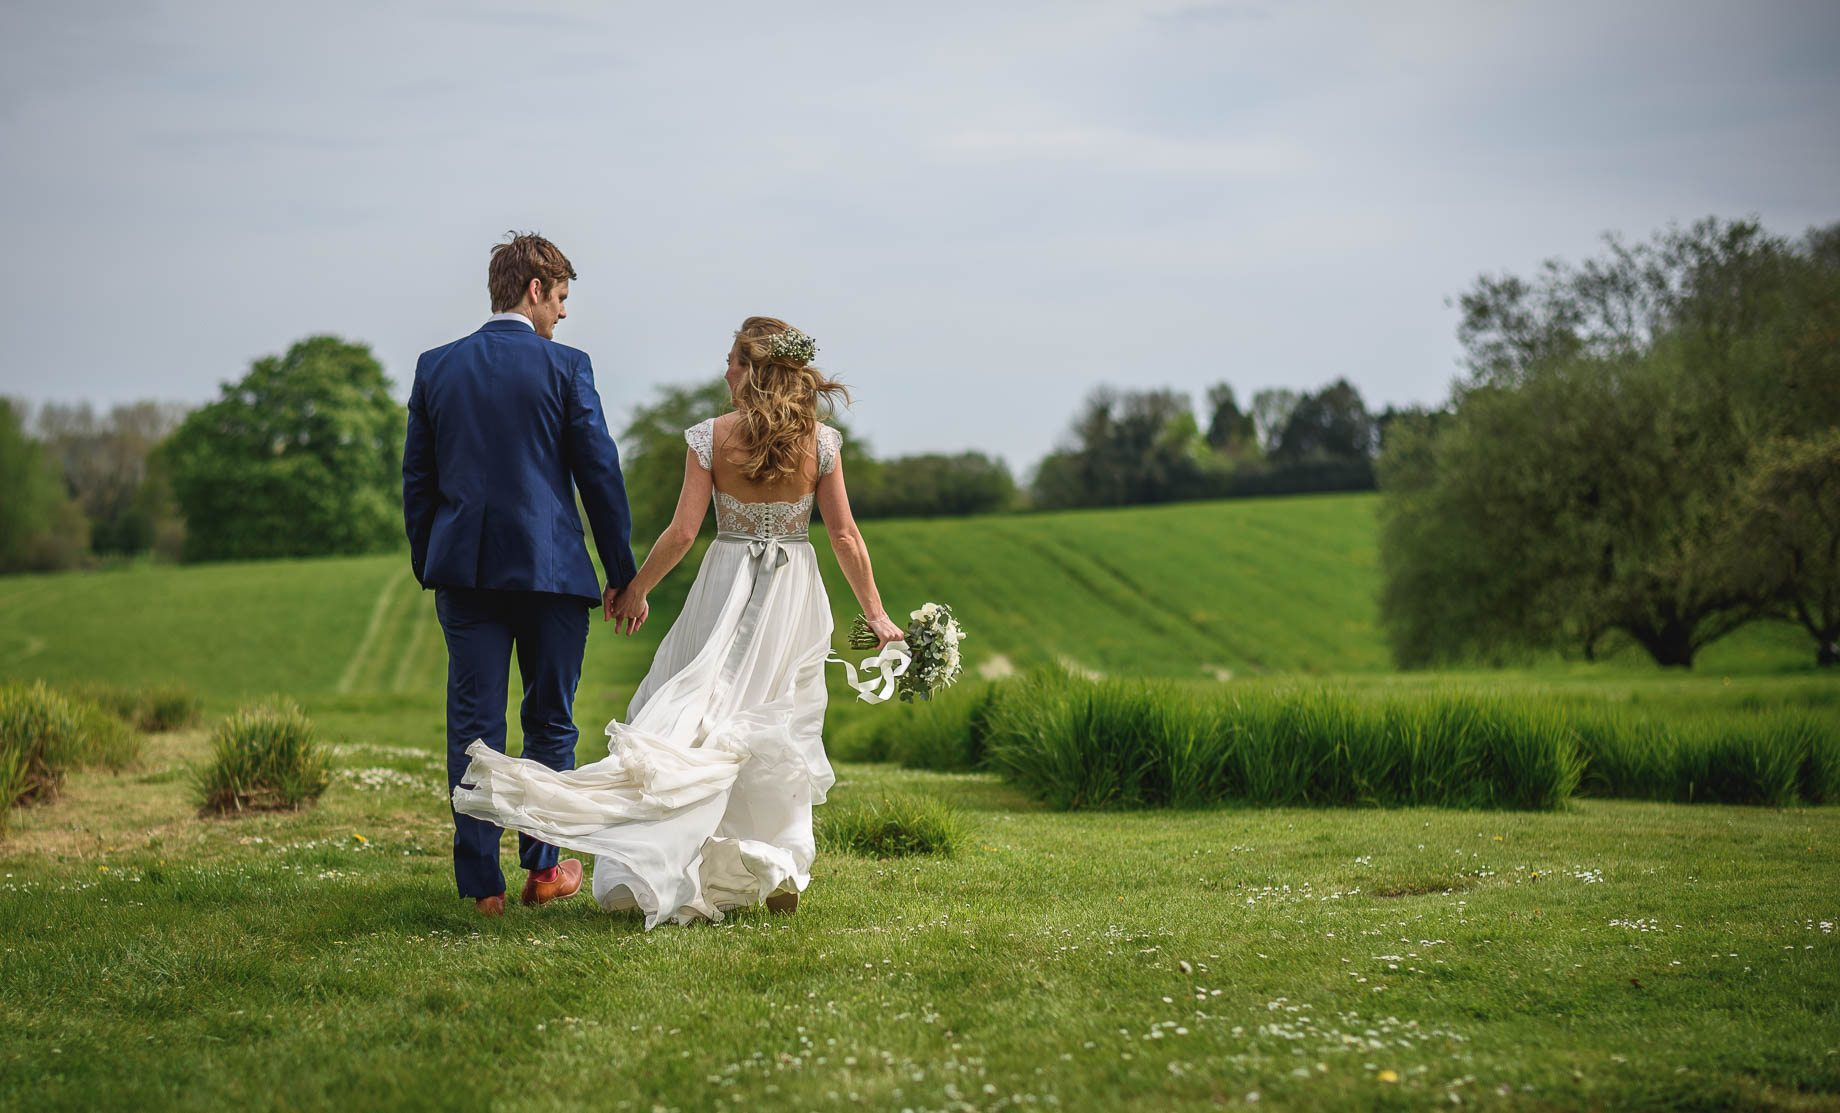 Bury Court Barn wedding photography - Heather + Pat